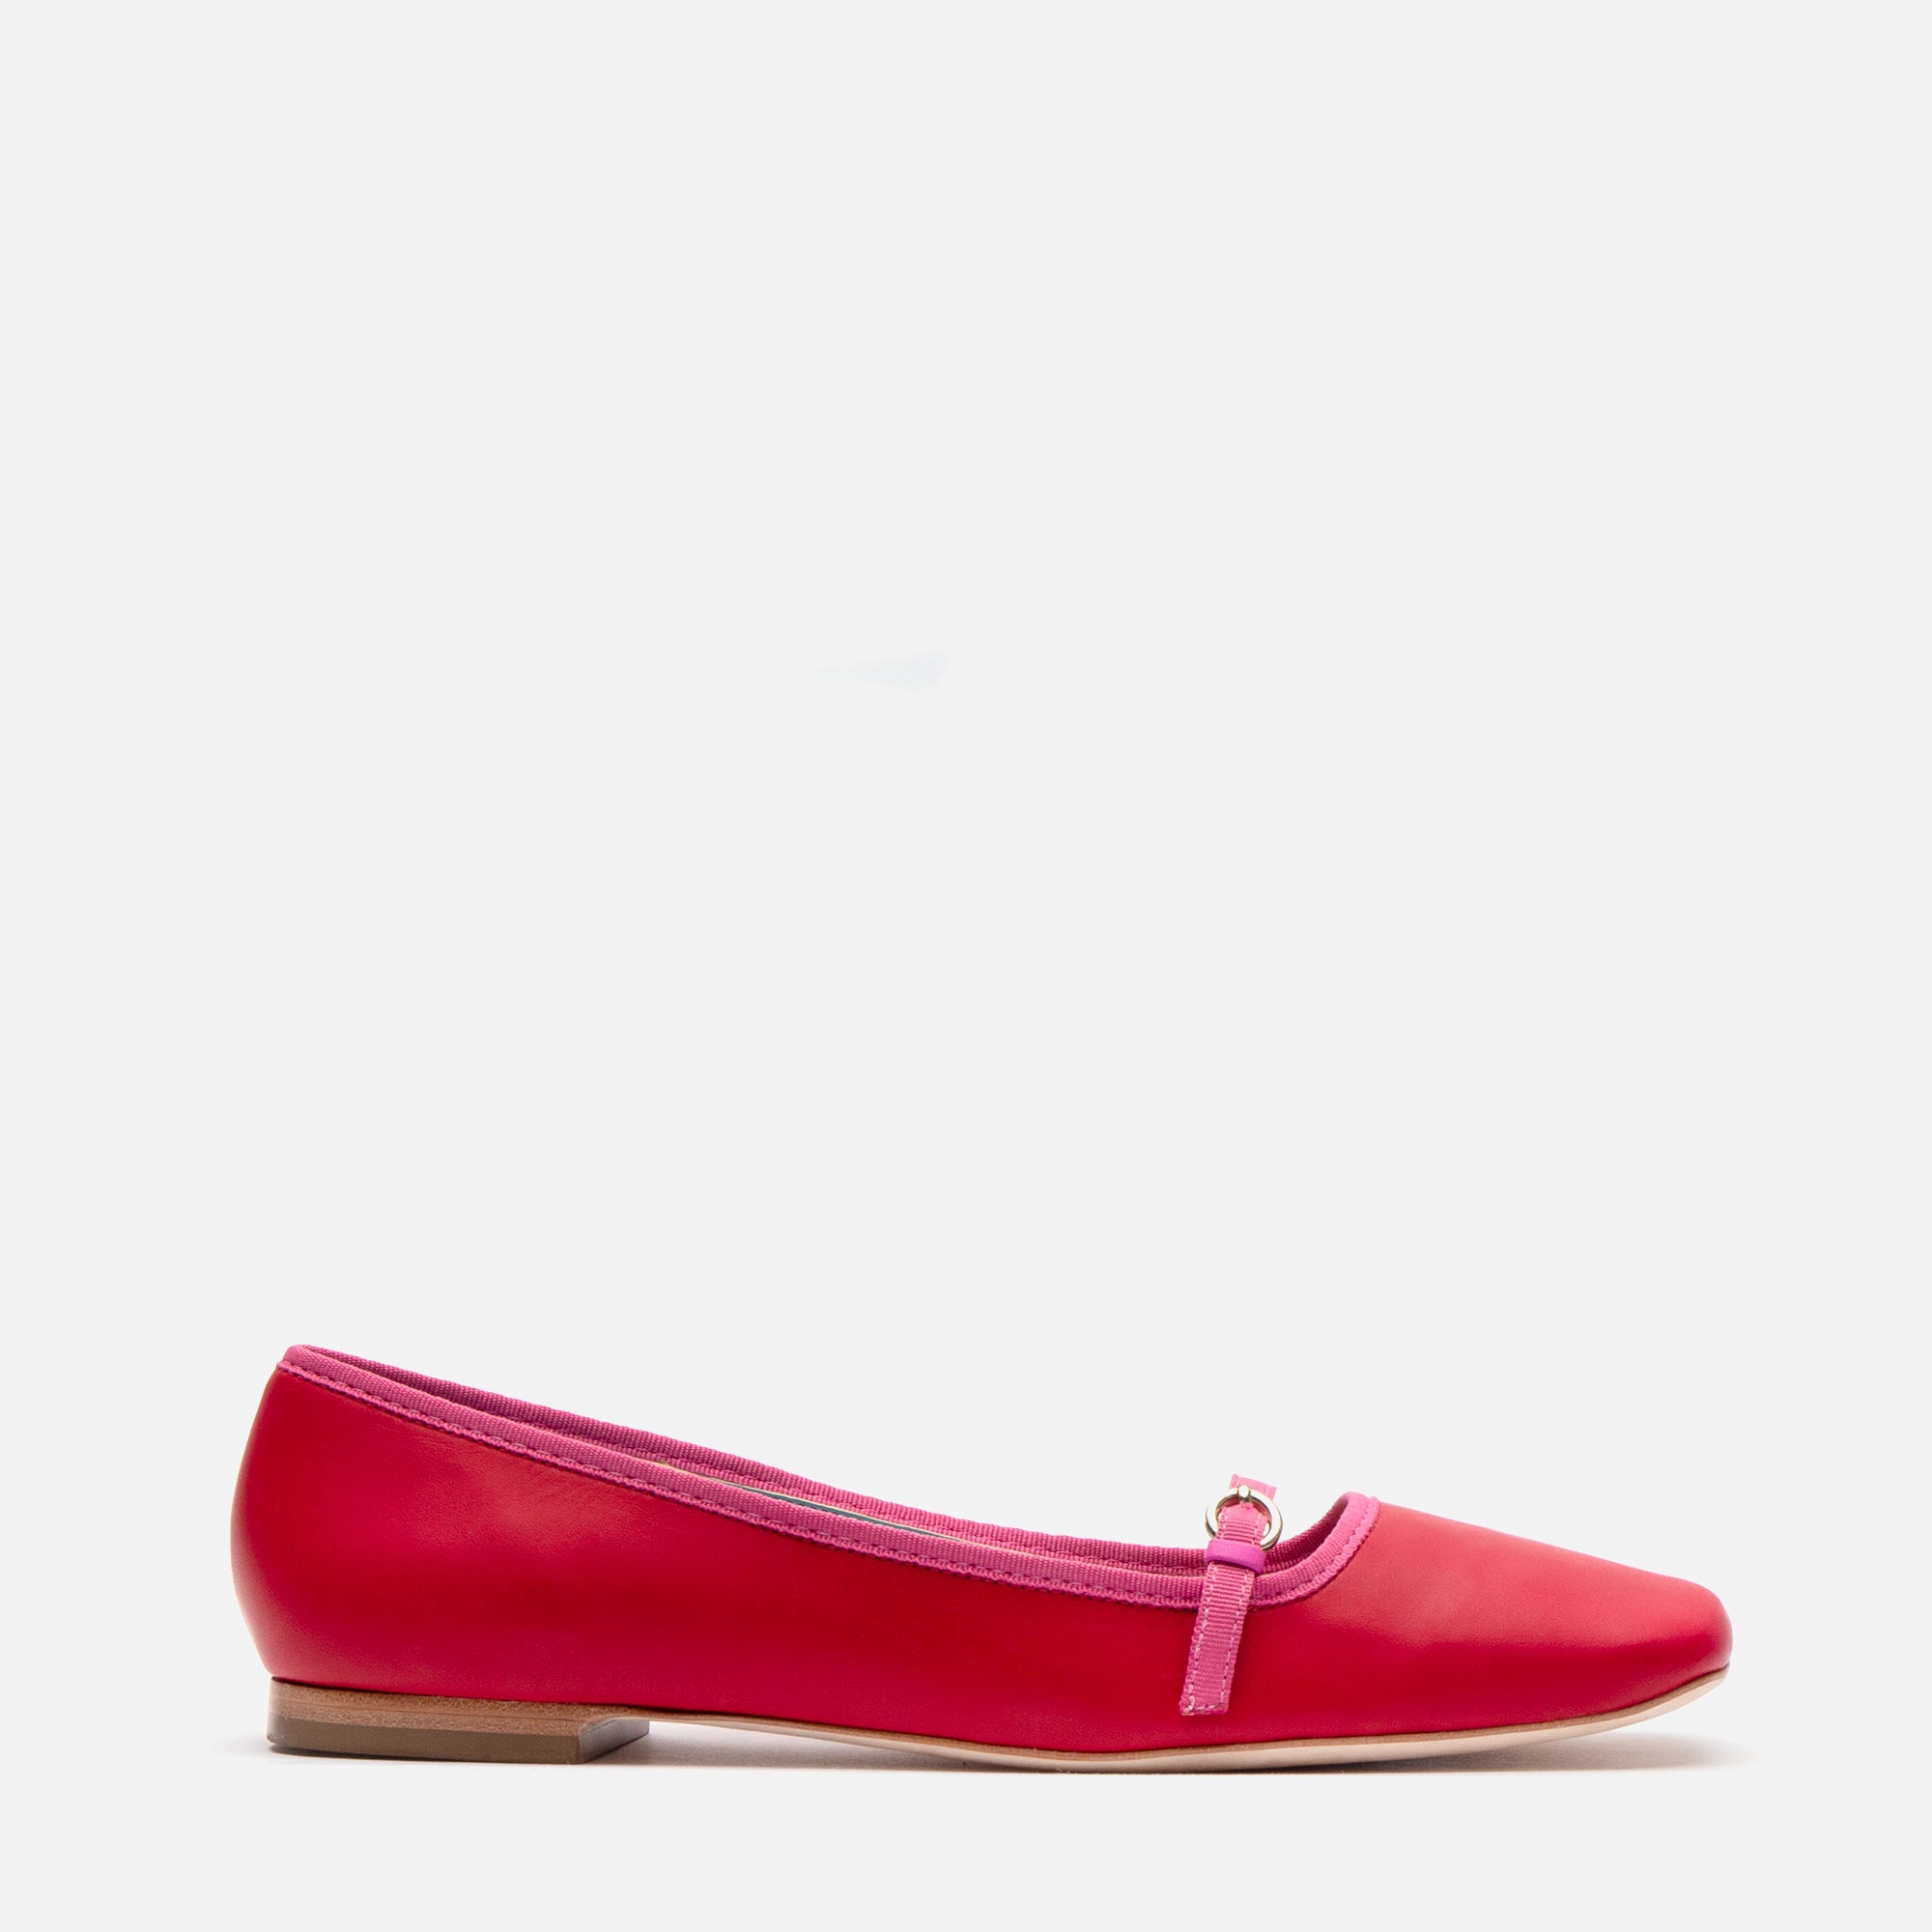 Josie Leather Flat Red Pink - Frances Valentine